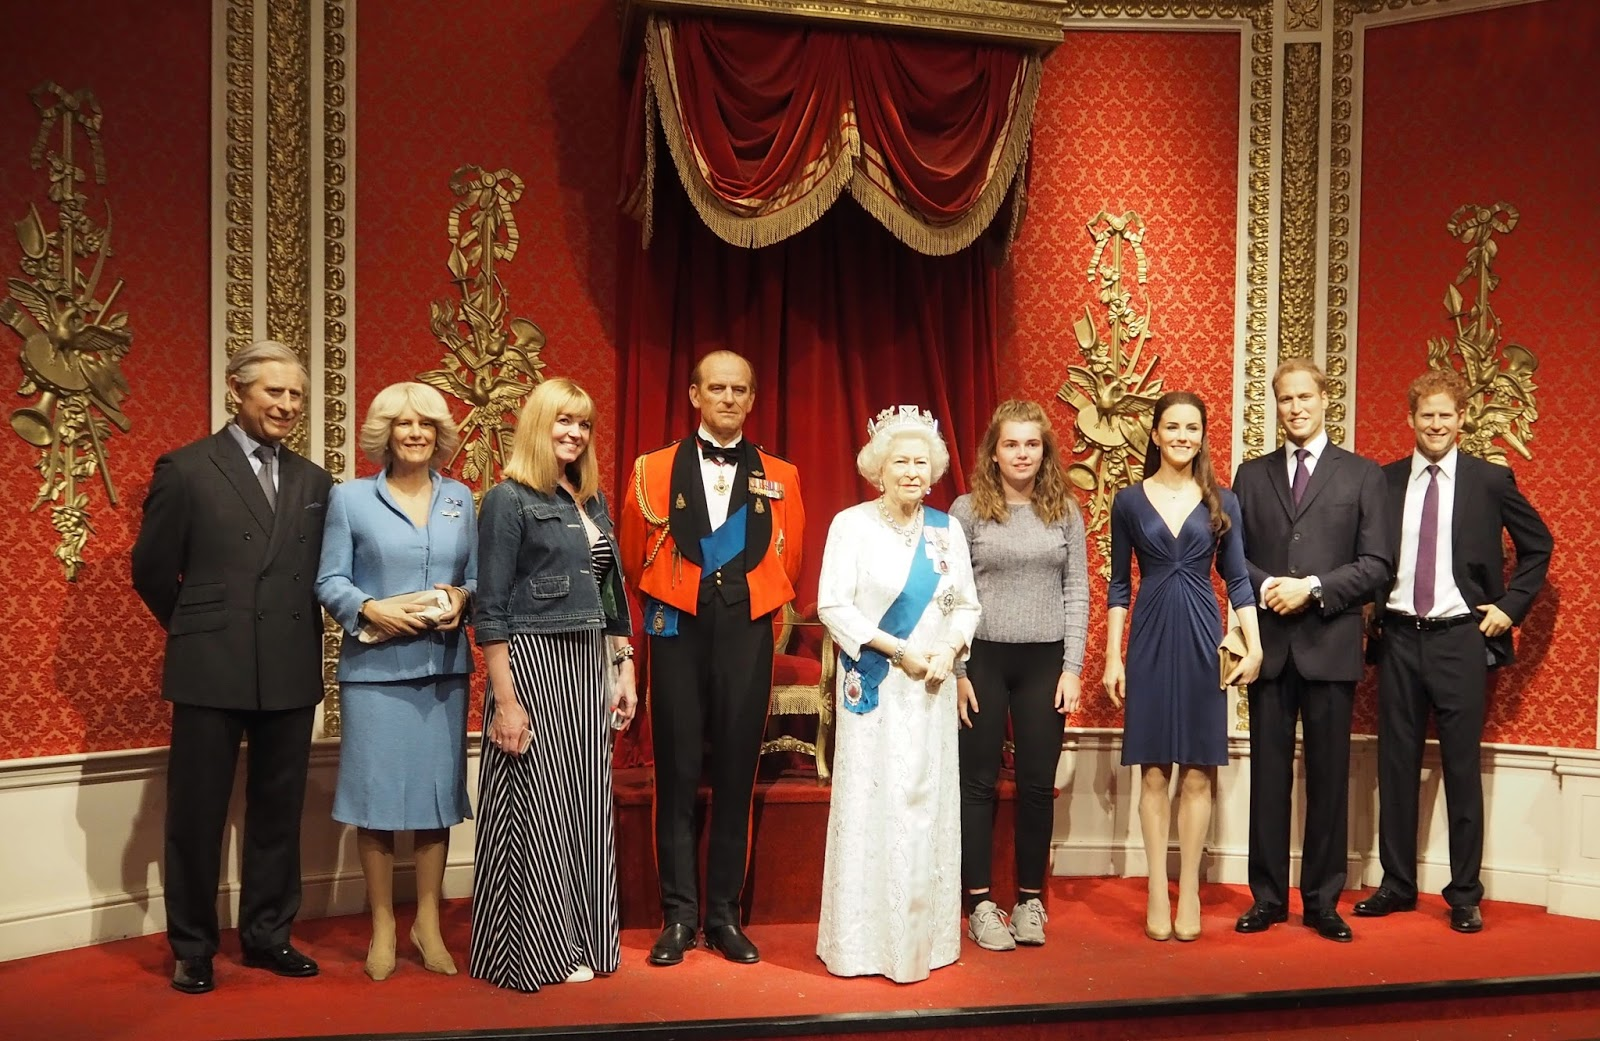 The British Royal Family at Madam Tussauds, London